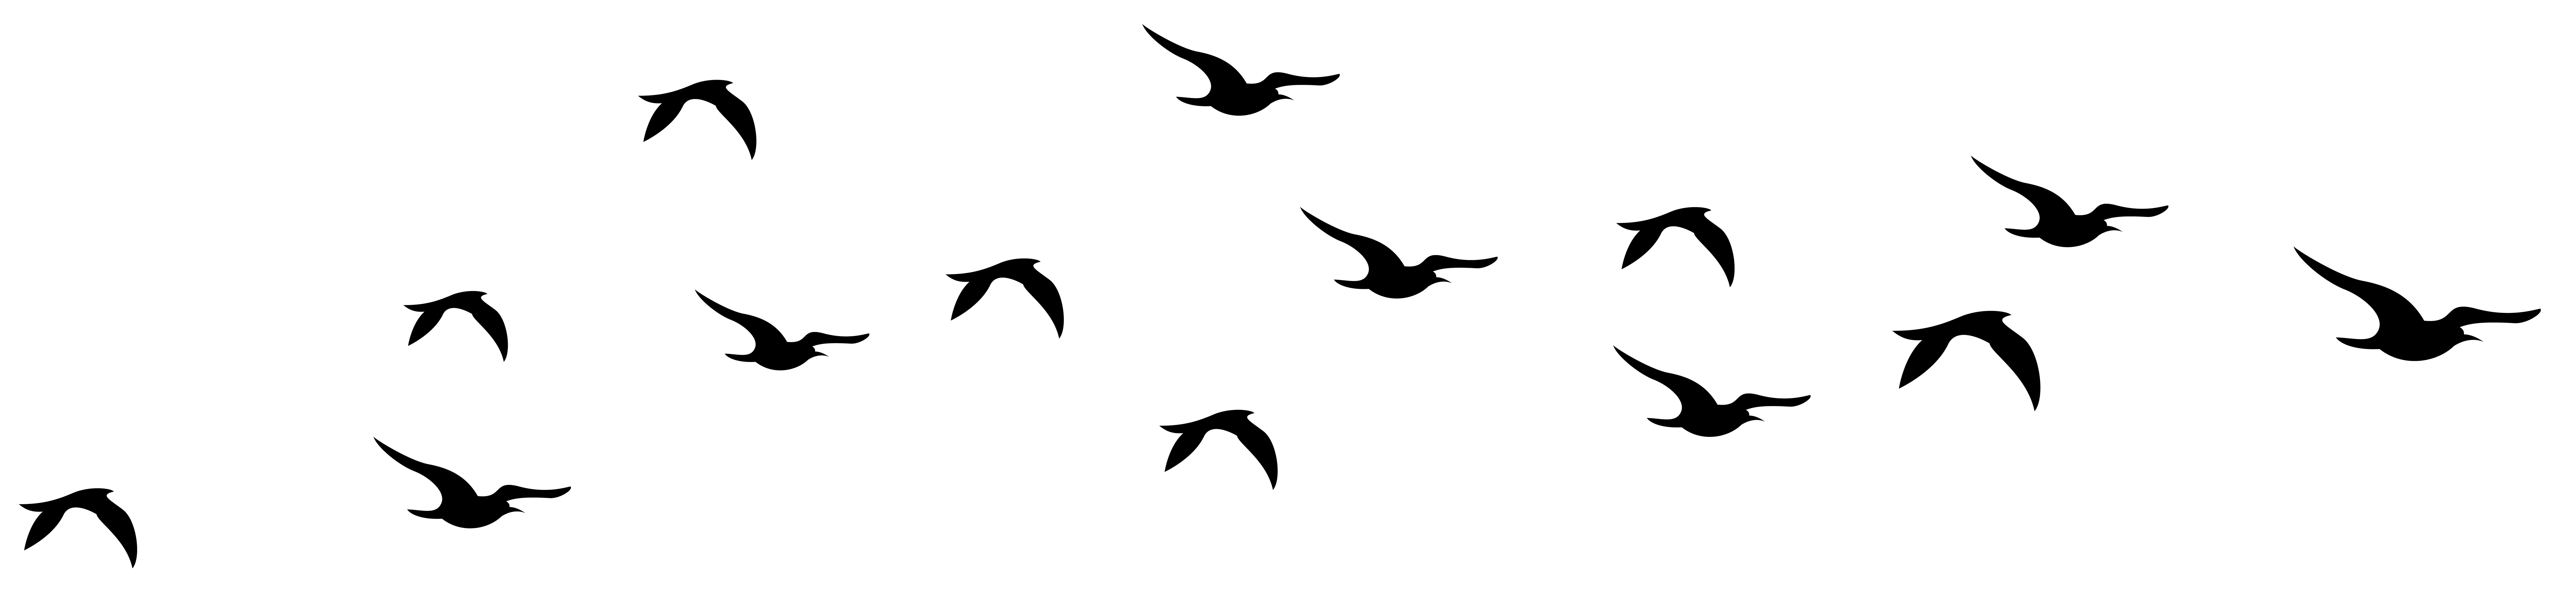 Bird silhouette png. Flying transparent stickpng